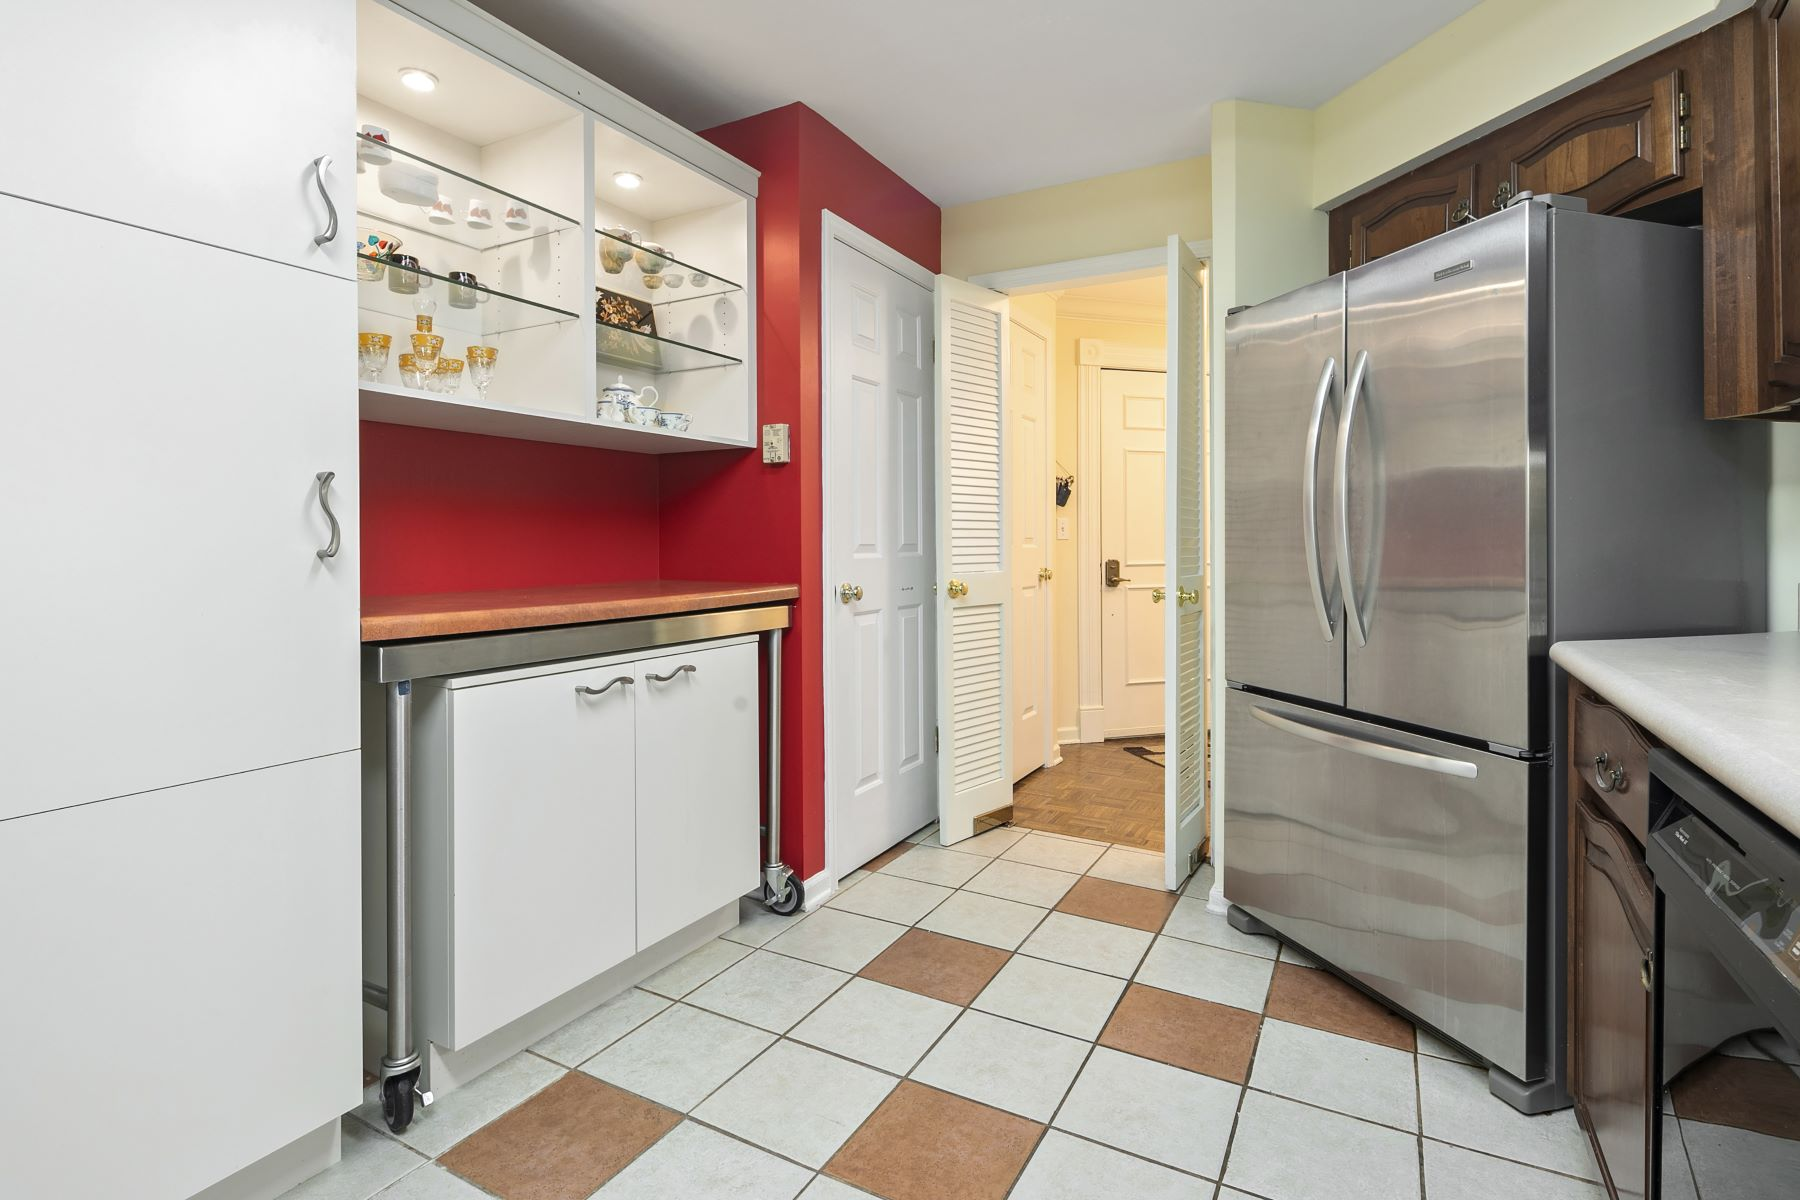 Additional photo for property listing at Central West End Condo 4554 Laclede Avenue #206 St. Louis, Missouri 63108 United States